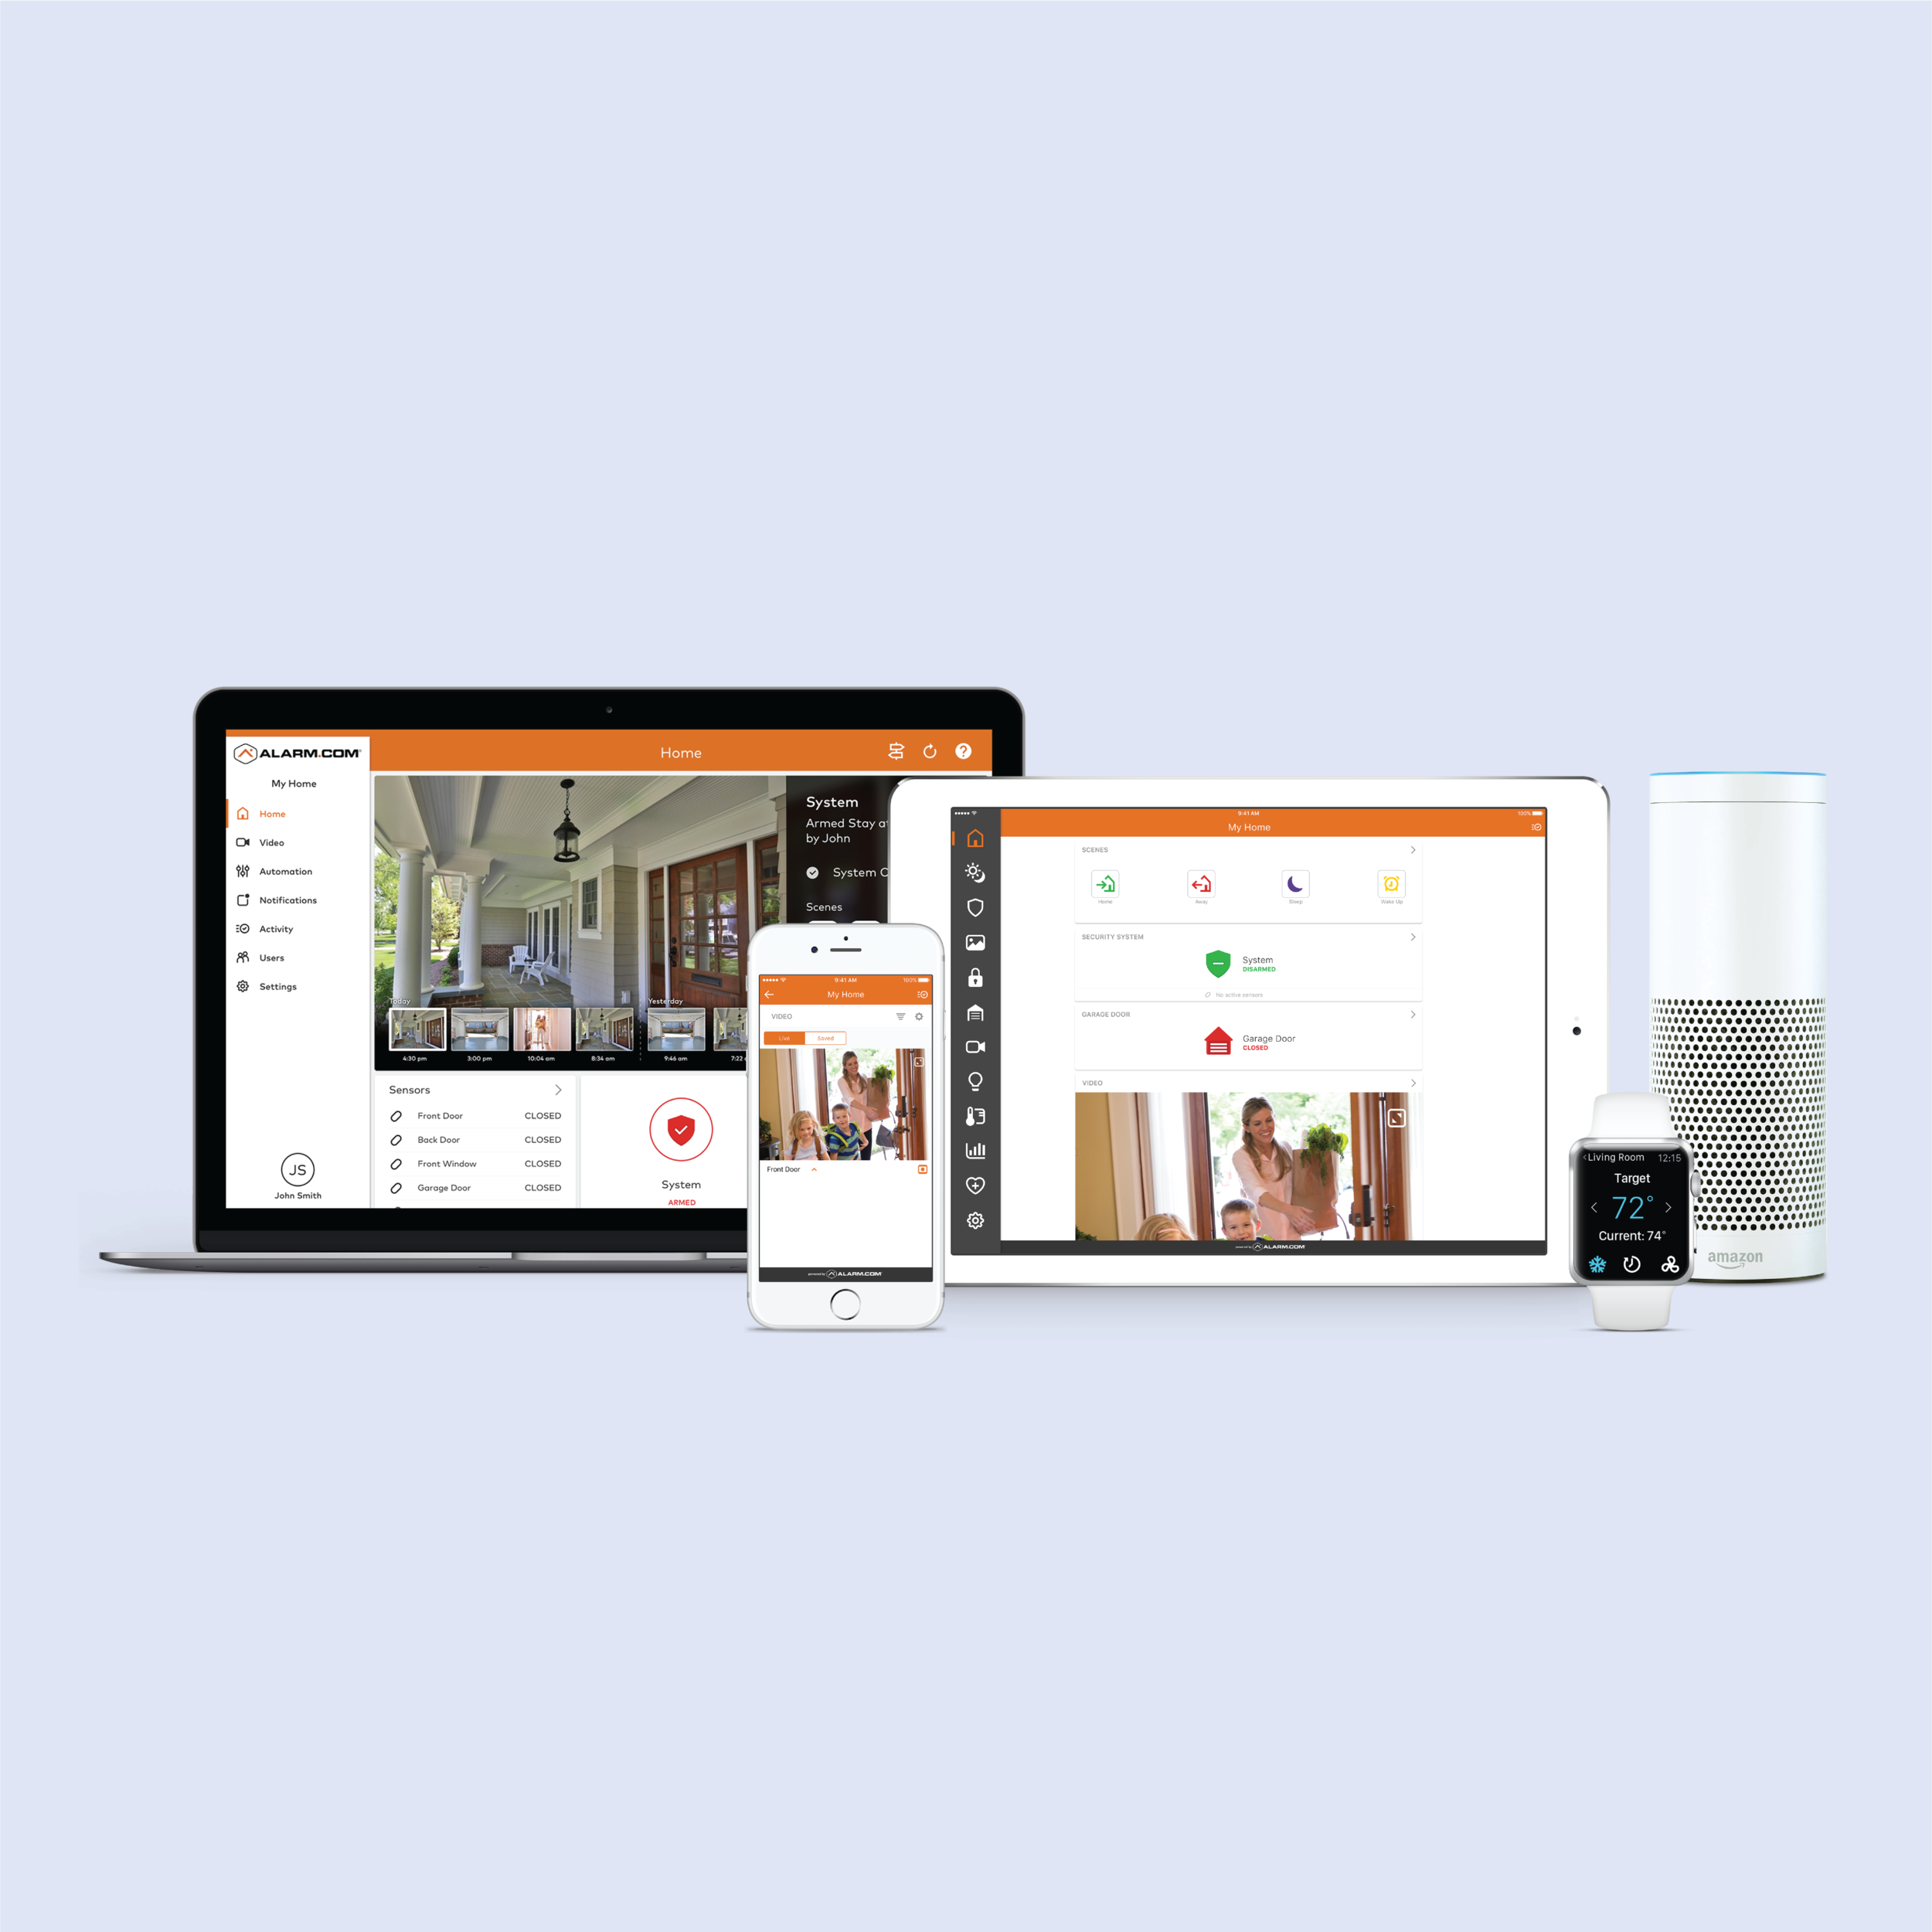 Manage everything from your smart devices. - Control your house's climate, your security system and even your lights – all from any smart device.